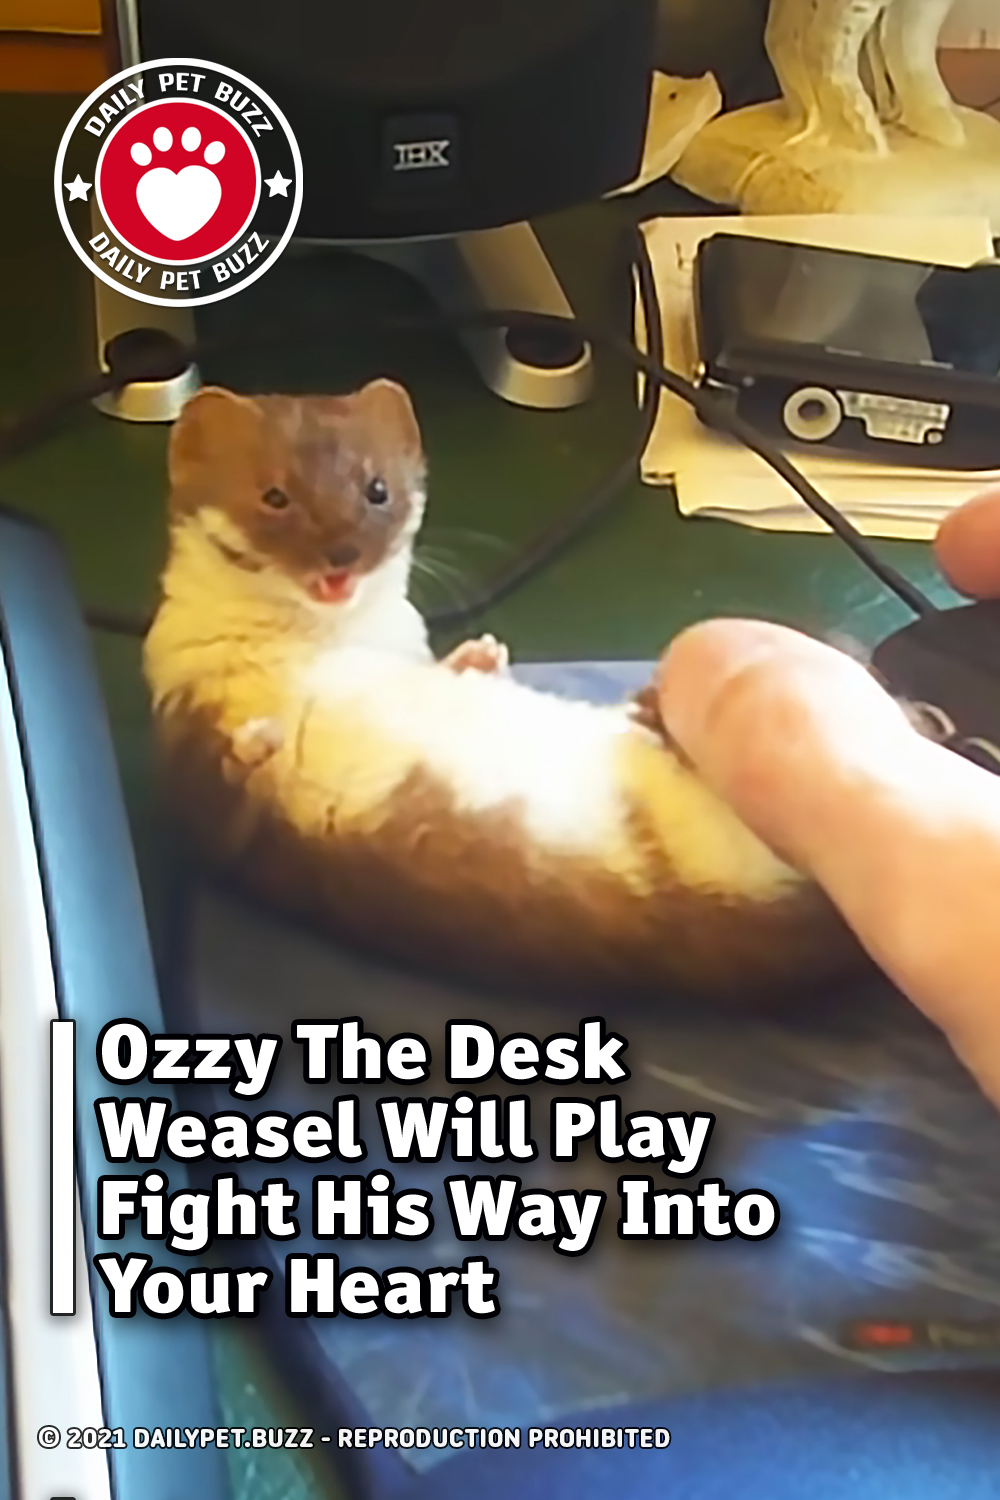 Ozzy The Desk Weasel Will Play Fight His Way Into Your Heart